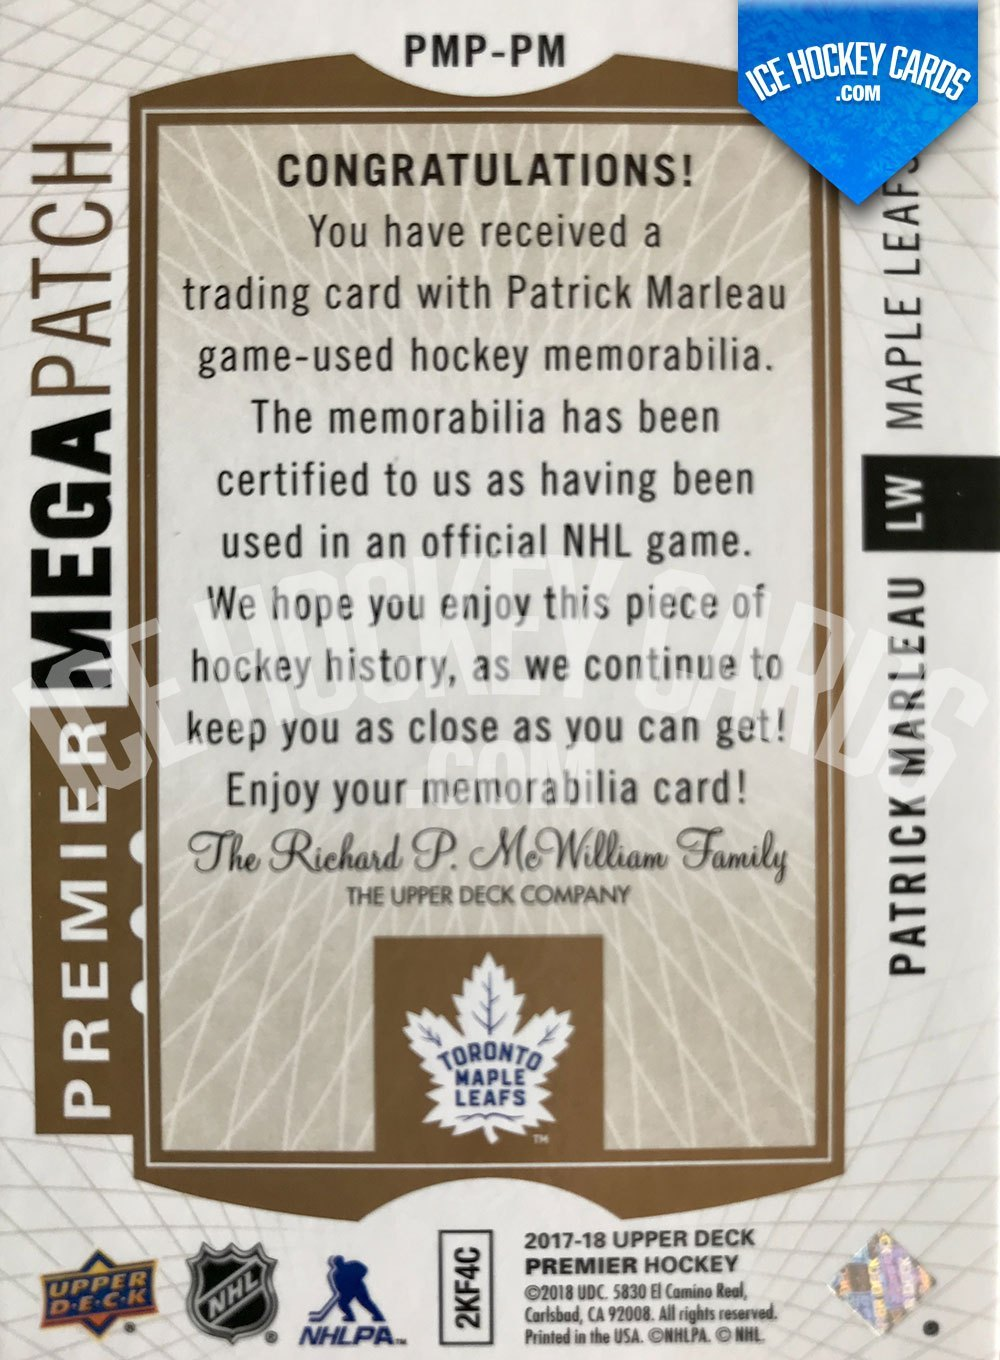 Upper Deck - Premier Hockey 2017-18 - Patrick Marleau Authentic Game-Used Premier Mega Patch Card up to 21 prints back RARE